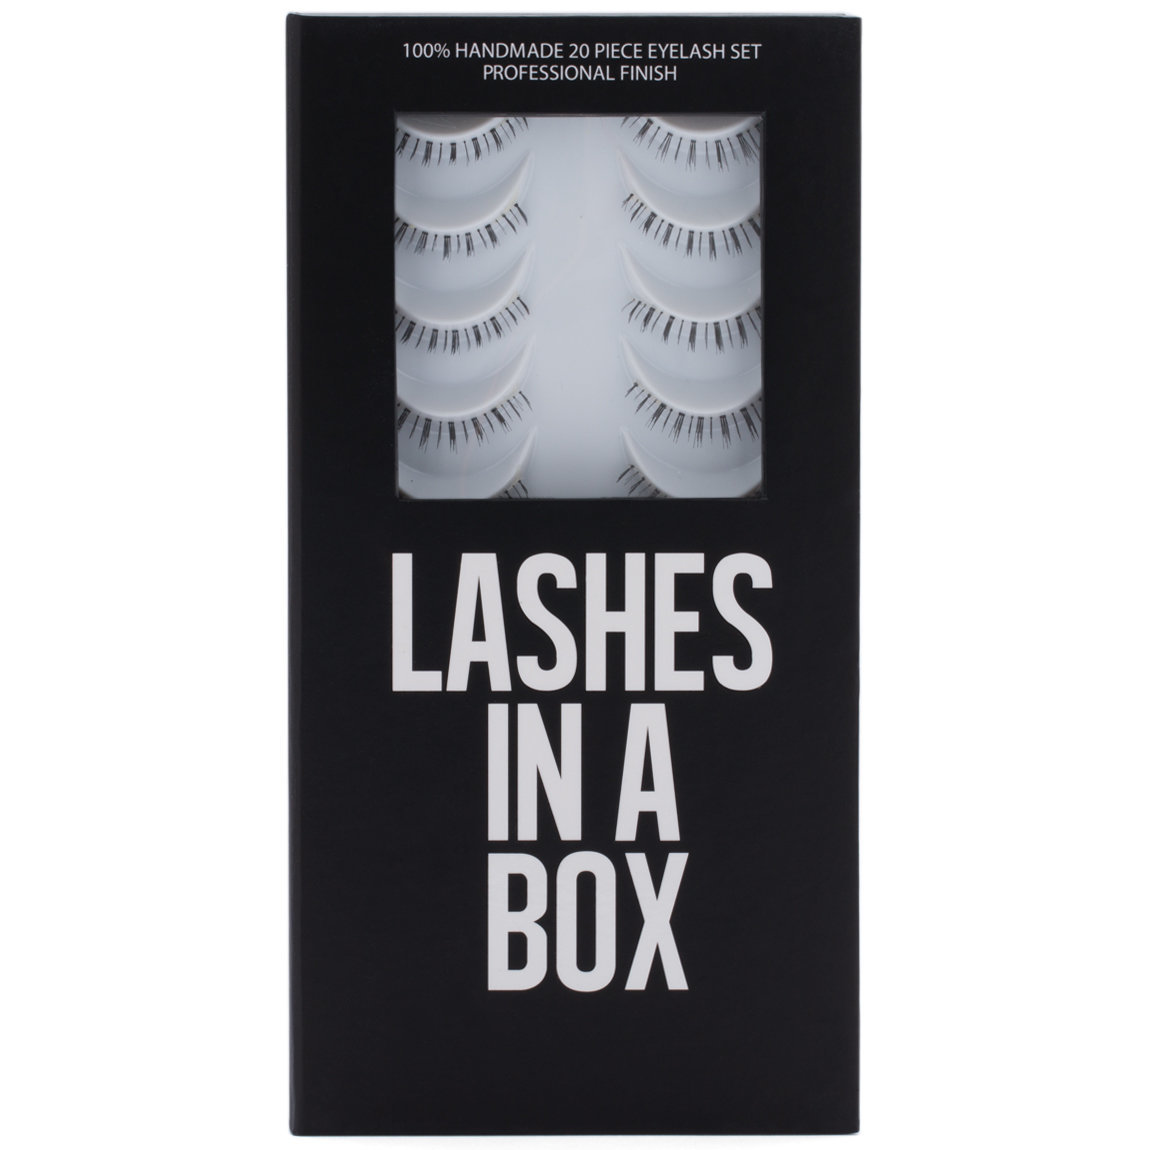 LASHES IN A BOX Lower Lash N°2 product swatch.